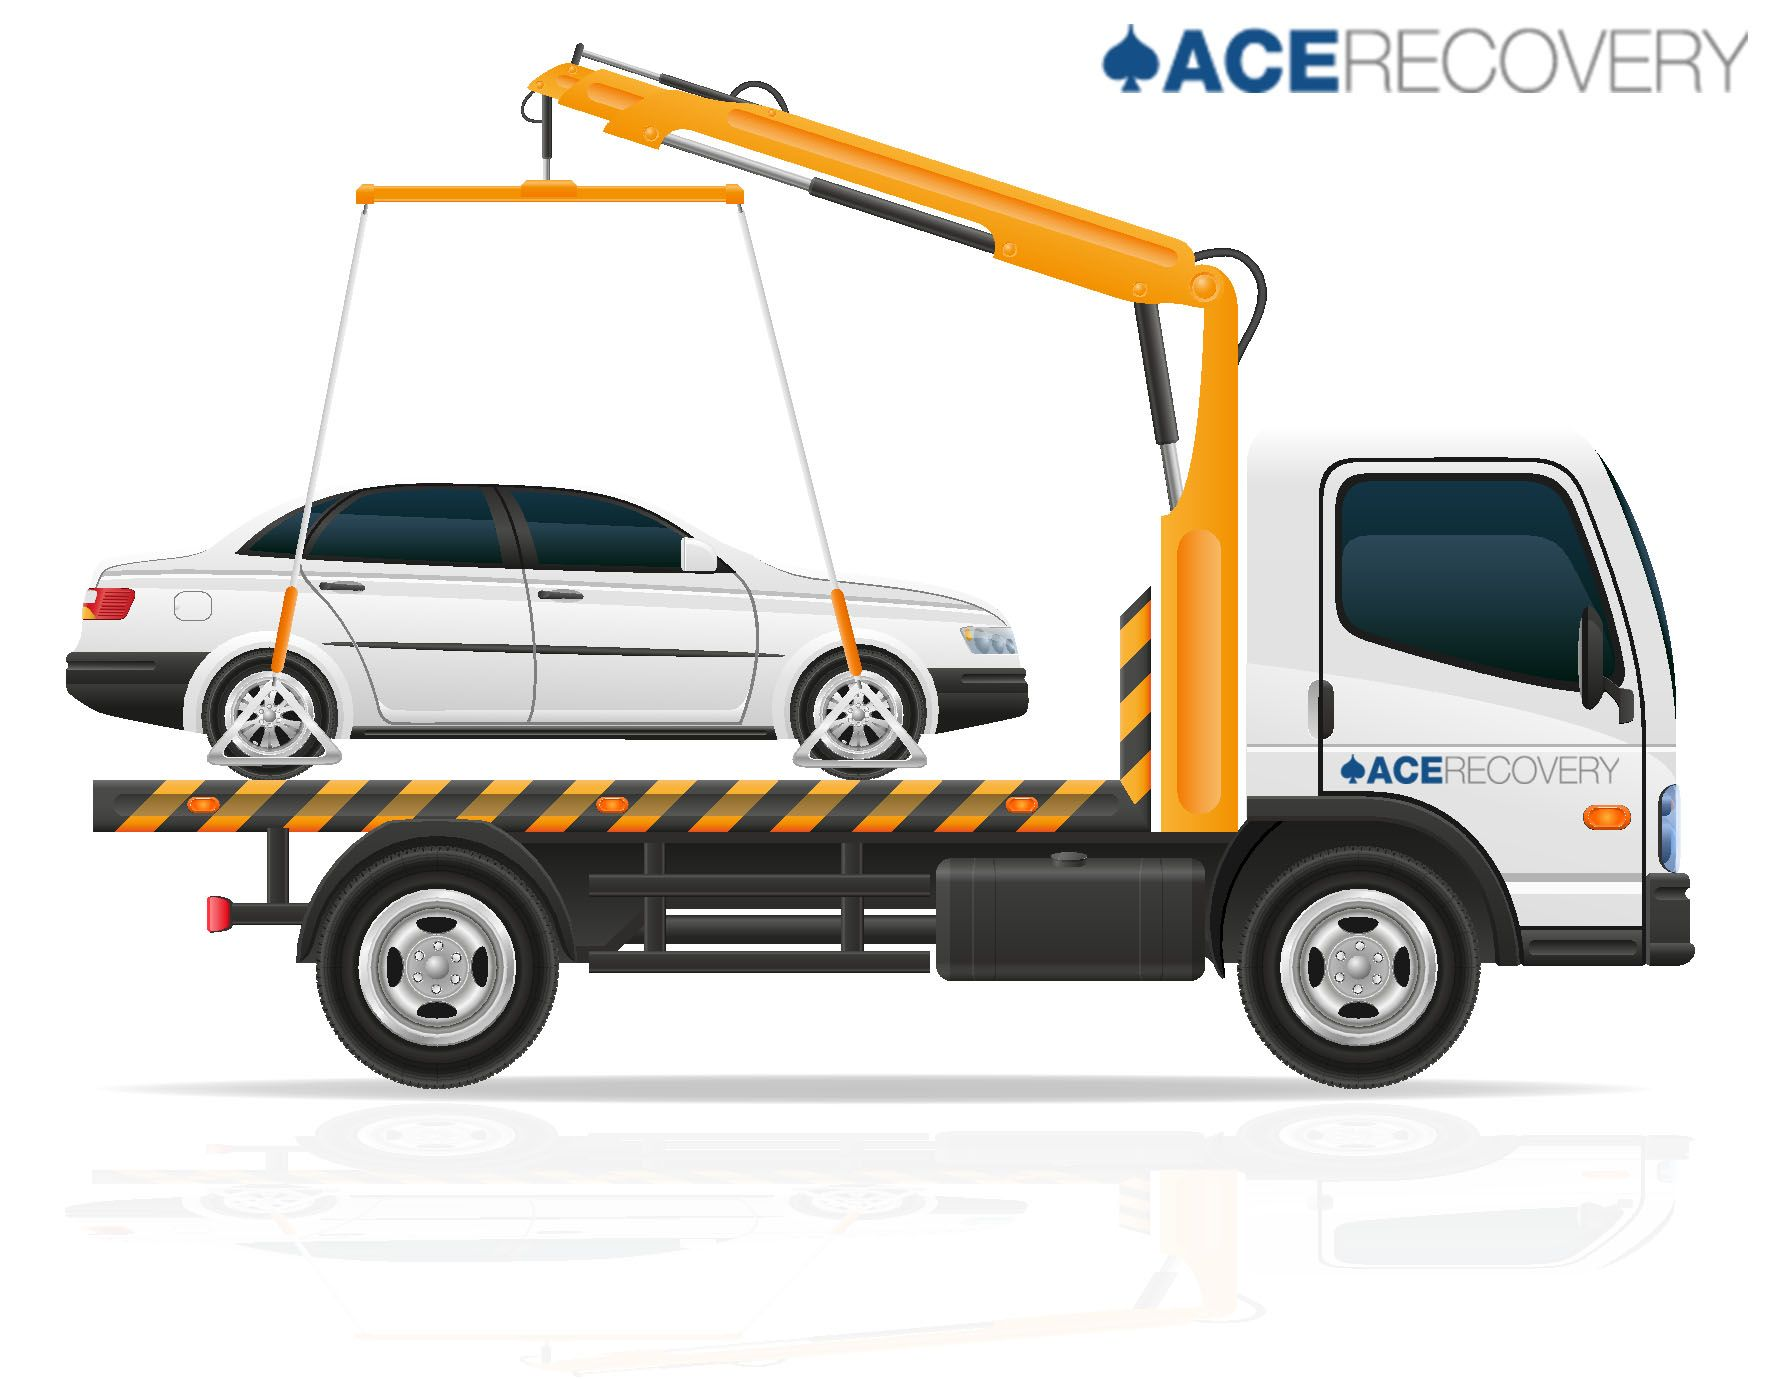 You can hire us for getting the most excellent car towing